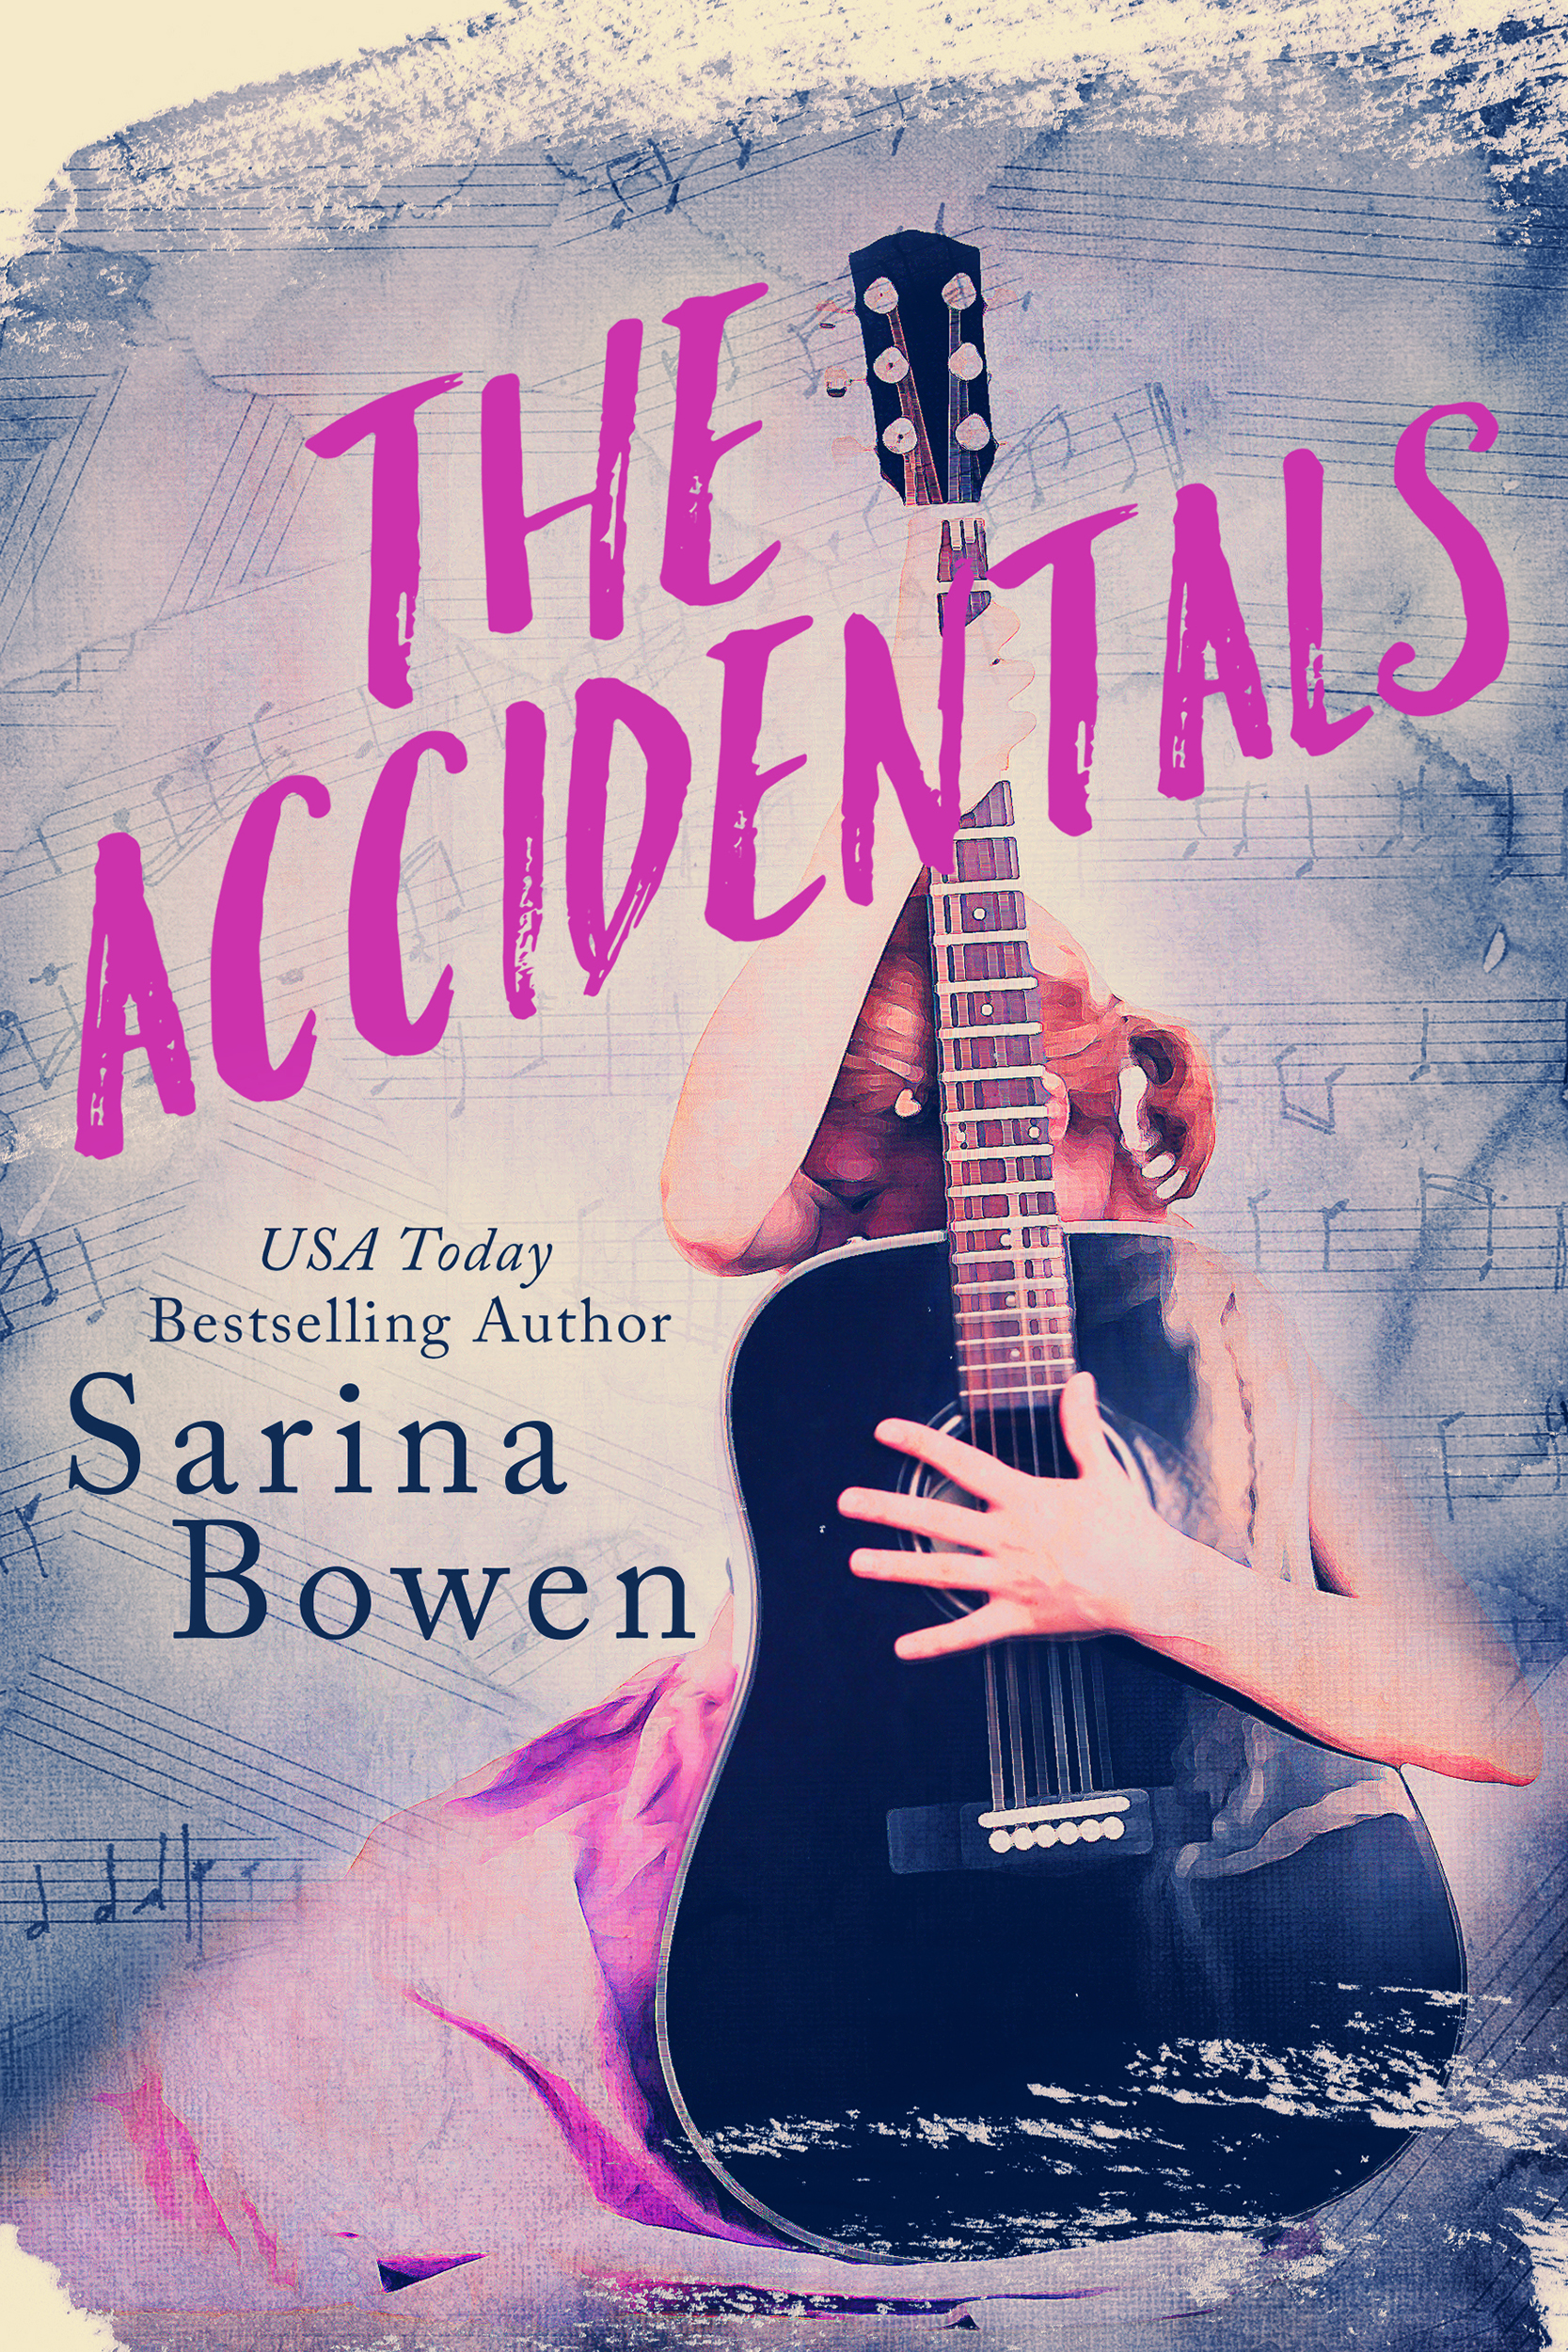 TheAccidentals_Amazon